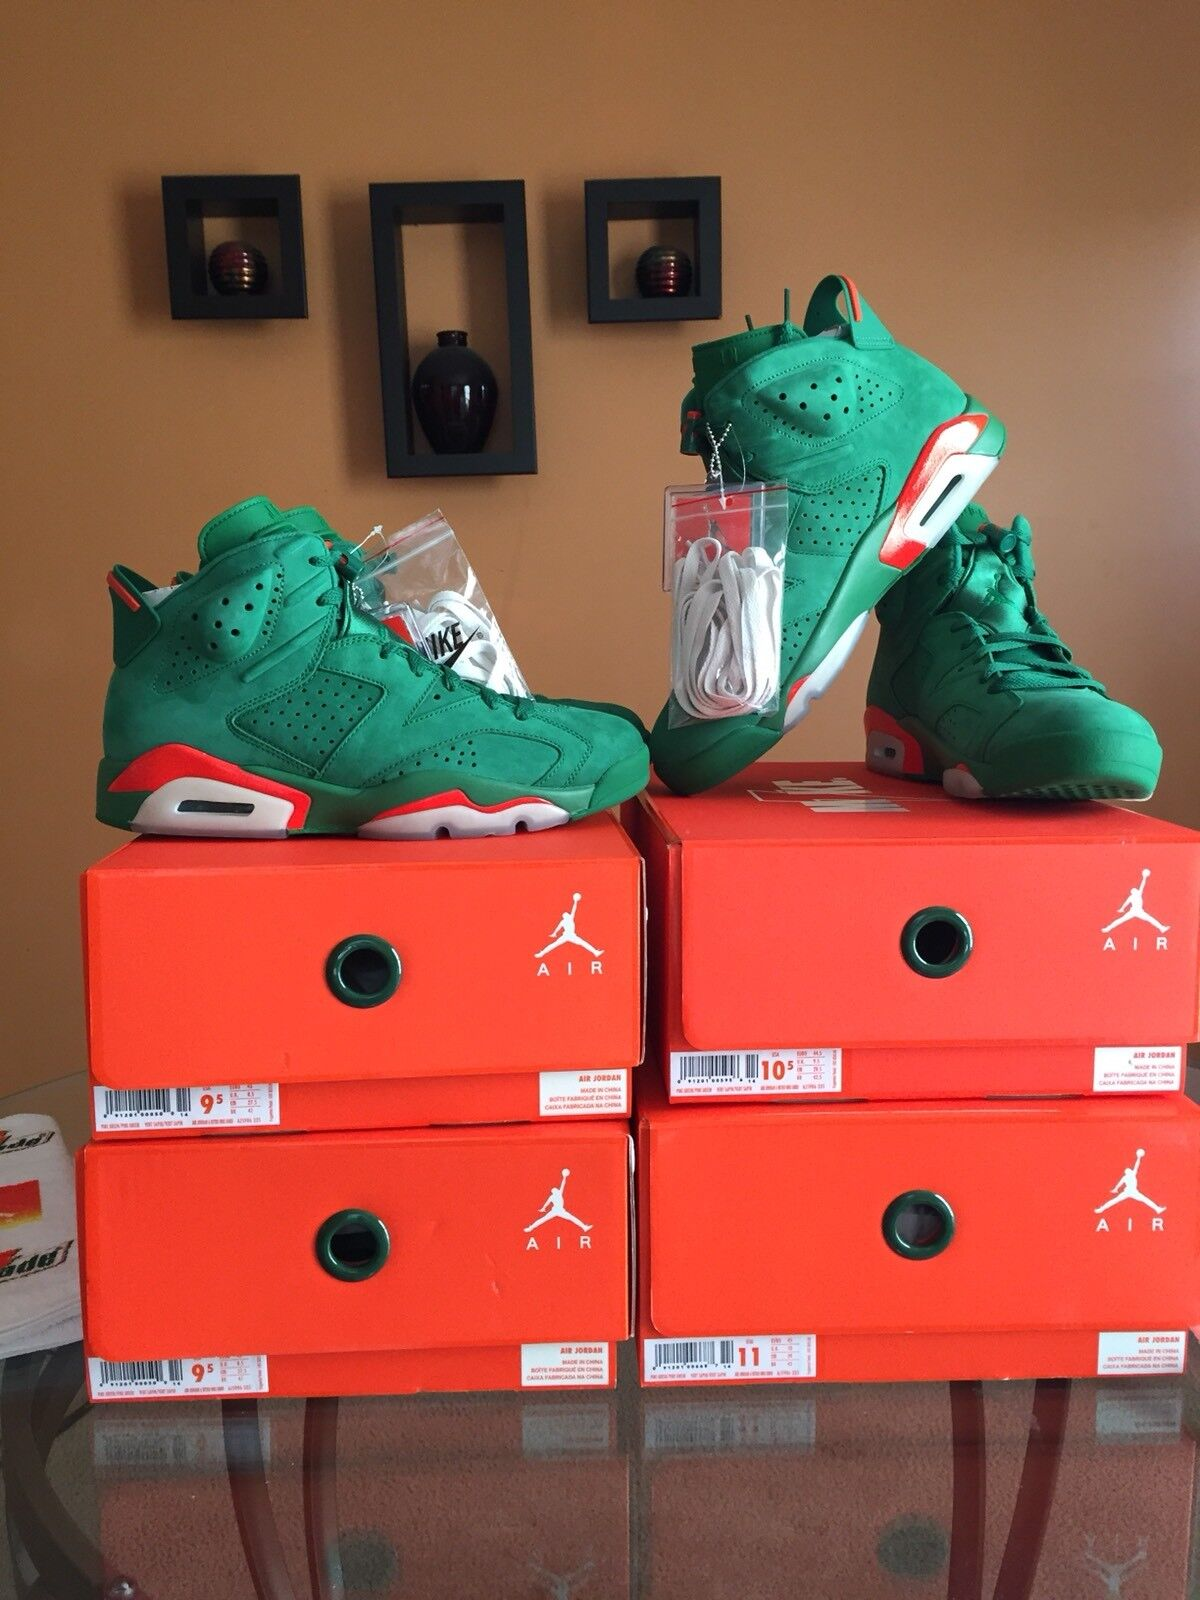 2d9d7d2320 Air Jordan 6 Green Gatorade AJ5986-335 nosyfr1165-Athletic Shoes ...